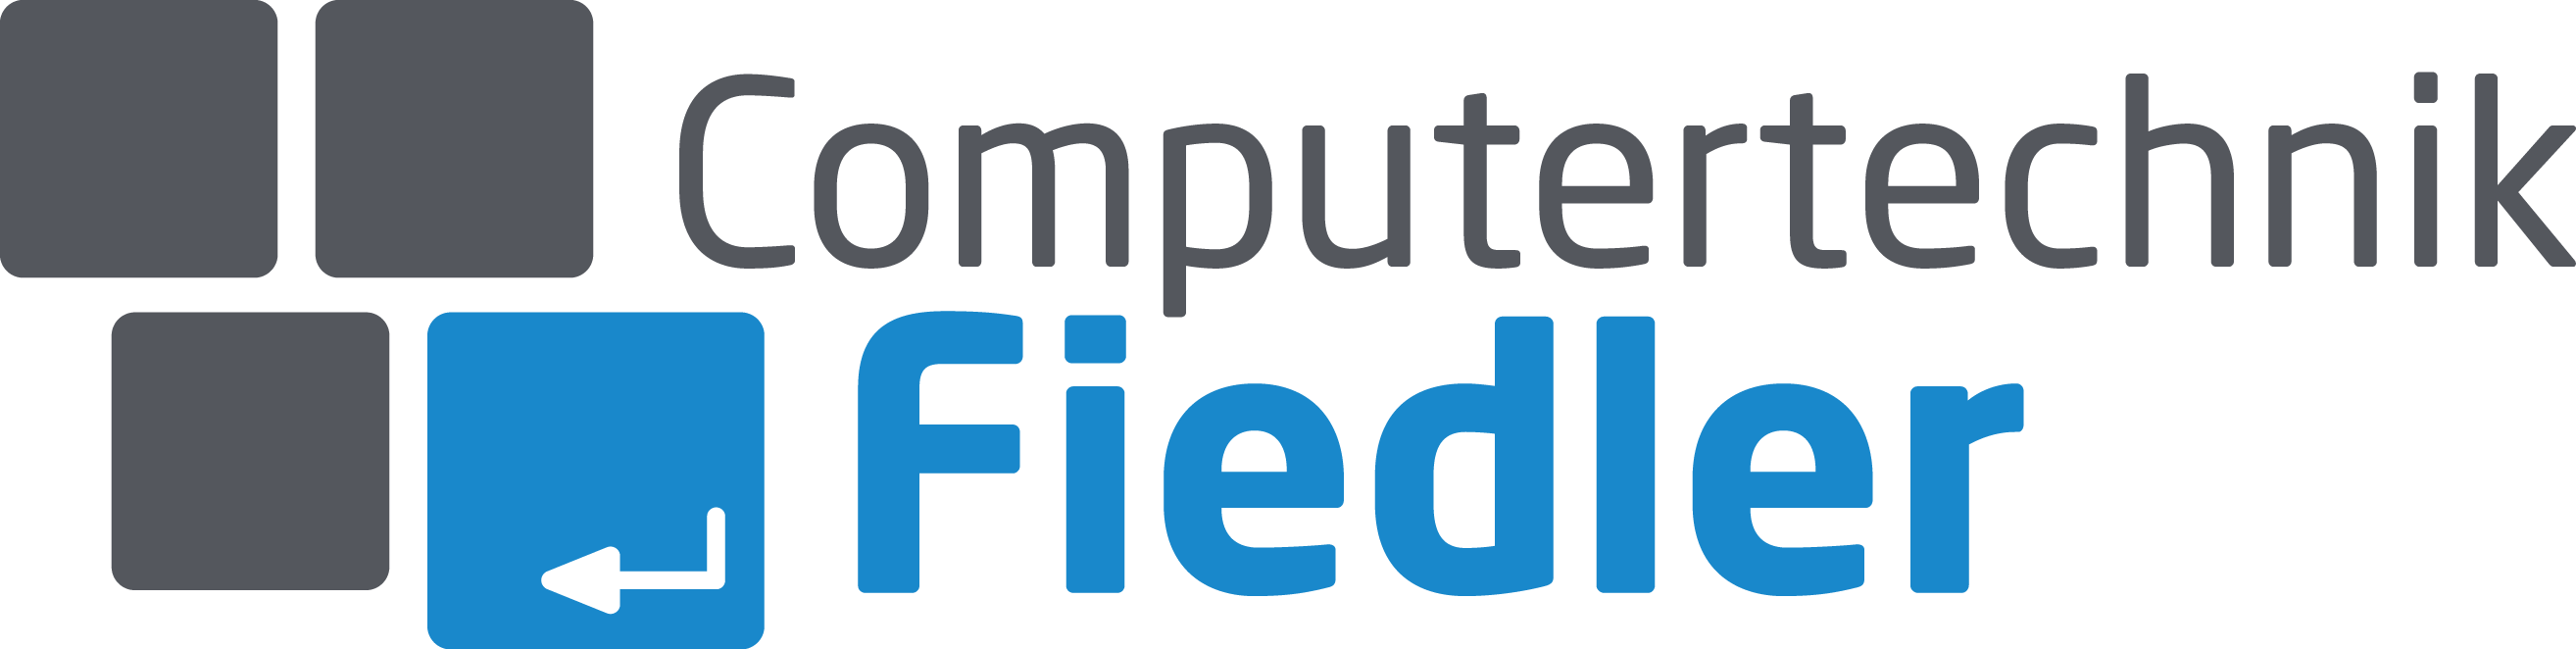 Computertechnik Fiedler